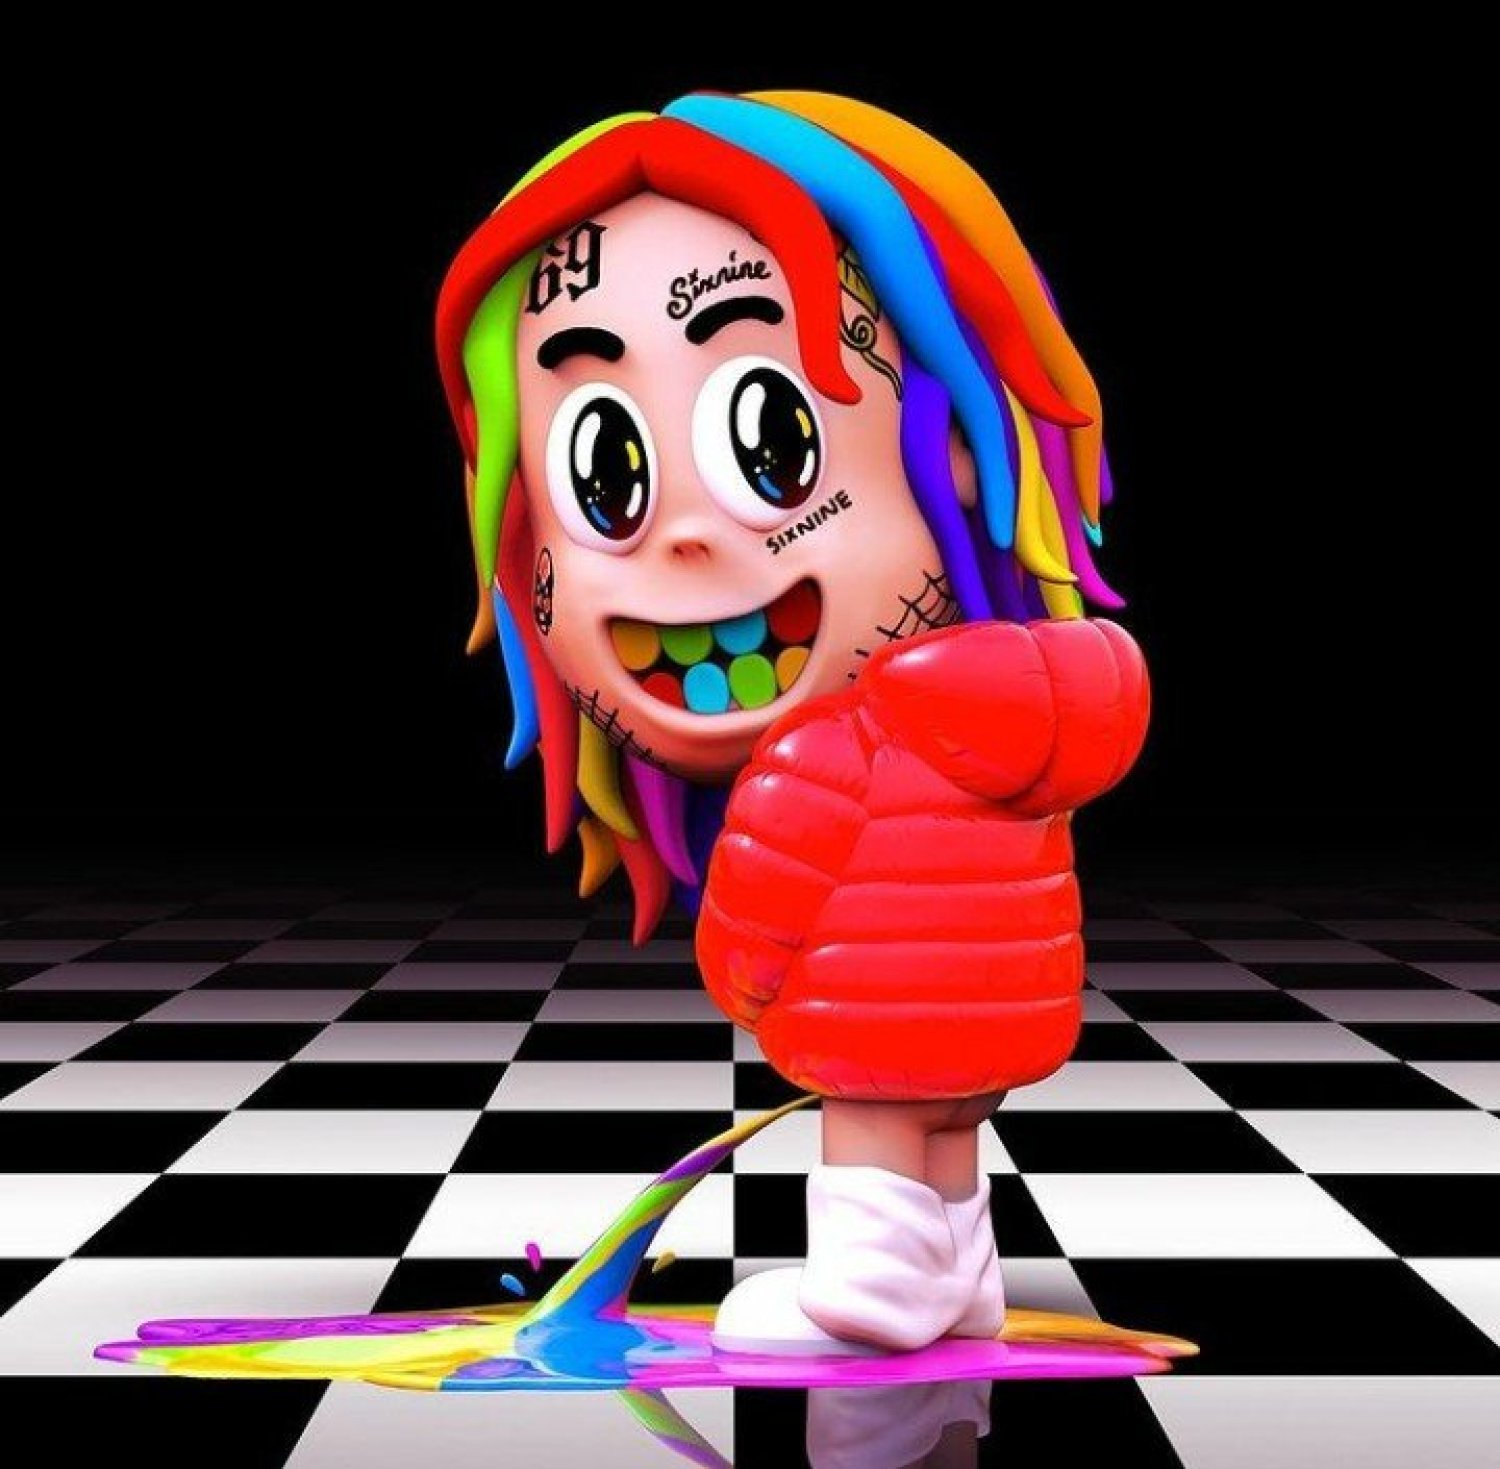 DOWNLOAD MP3: 6ix9ine – ZAZA (Free MP3) AUDIO 320kbps